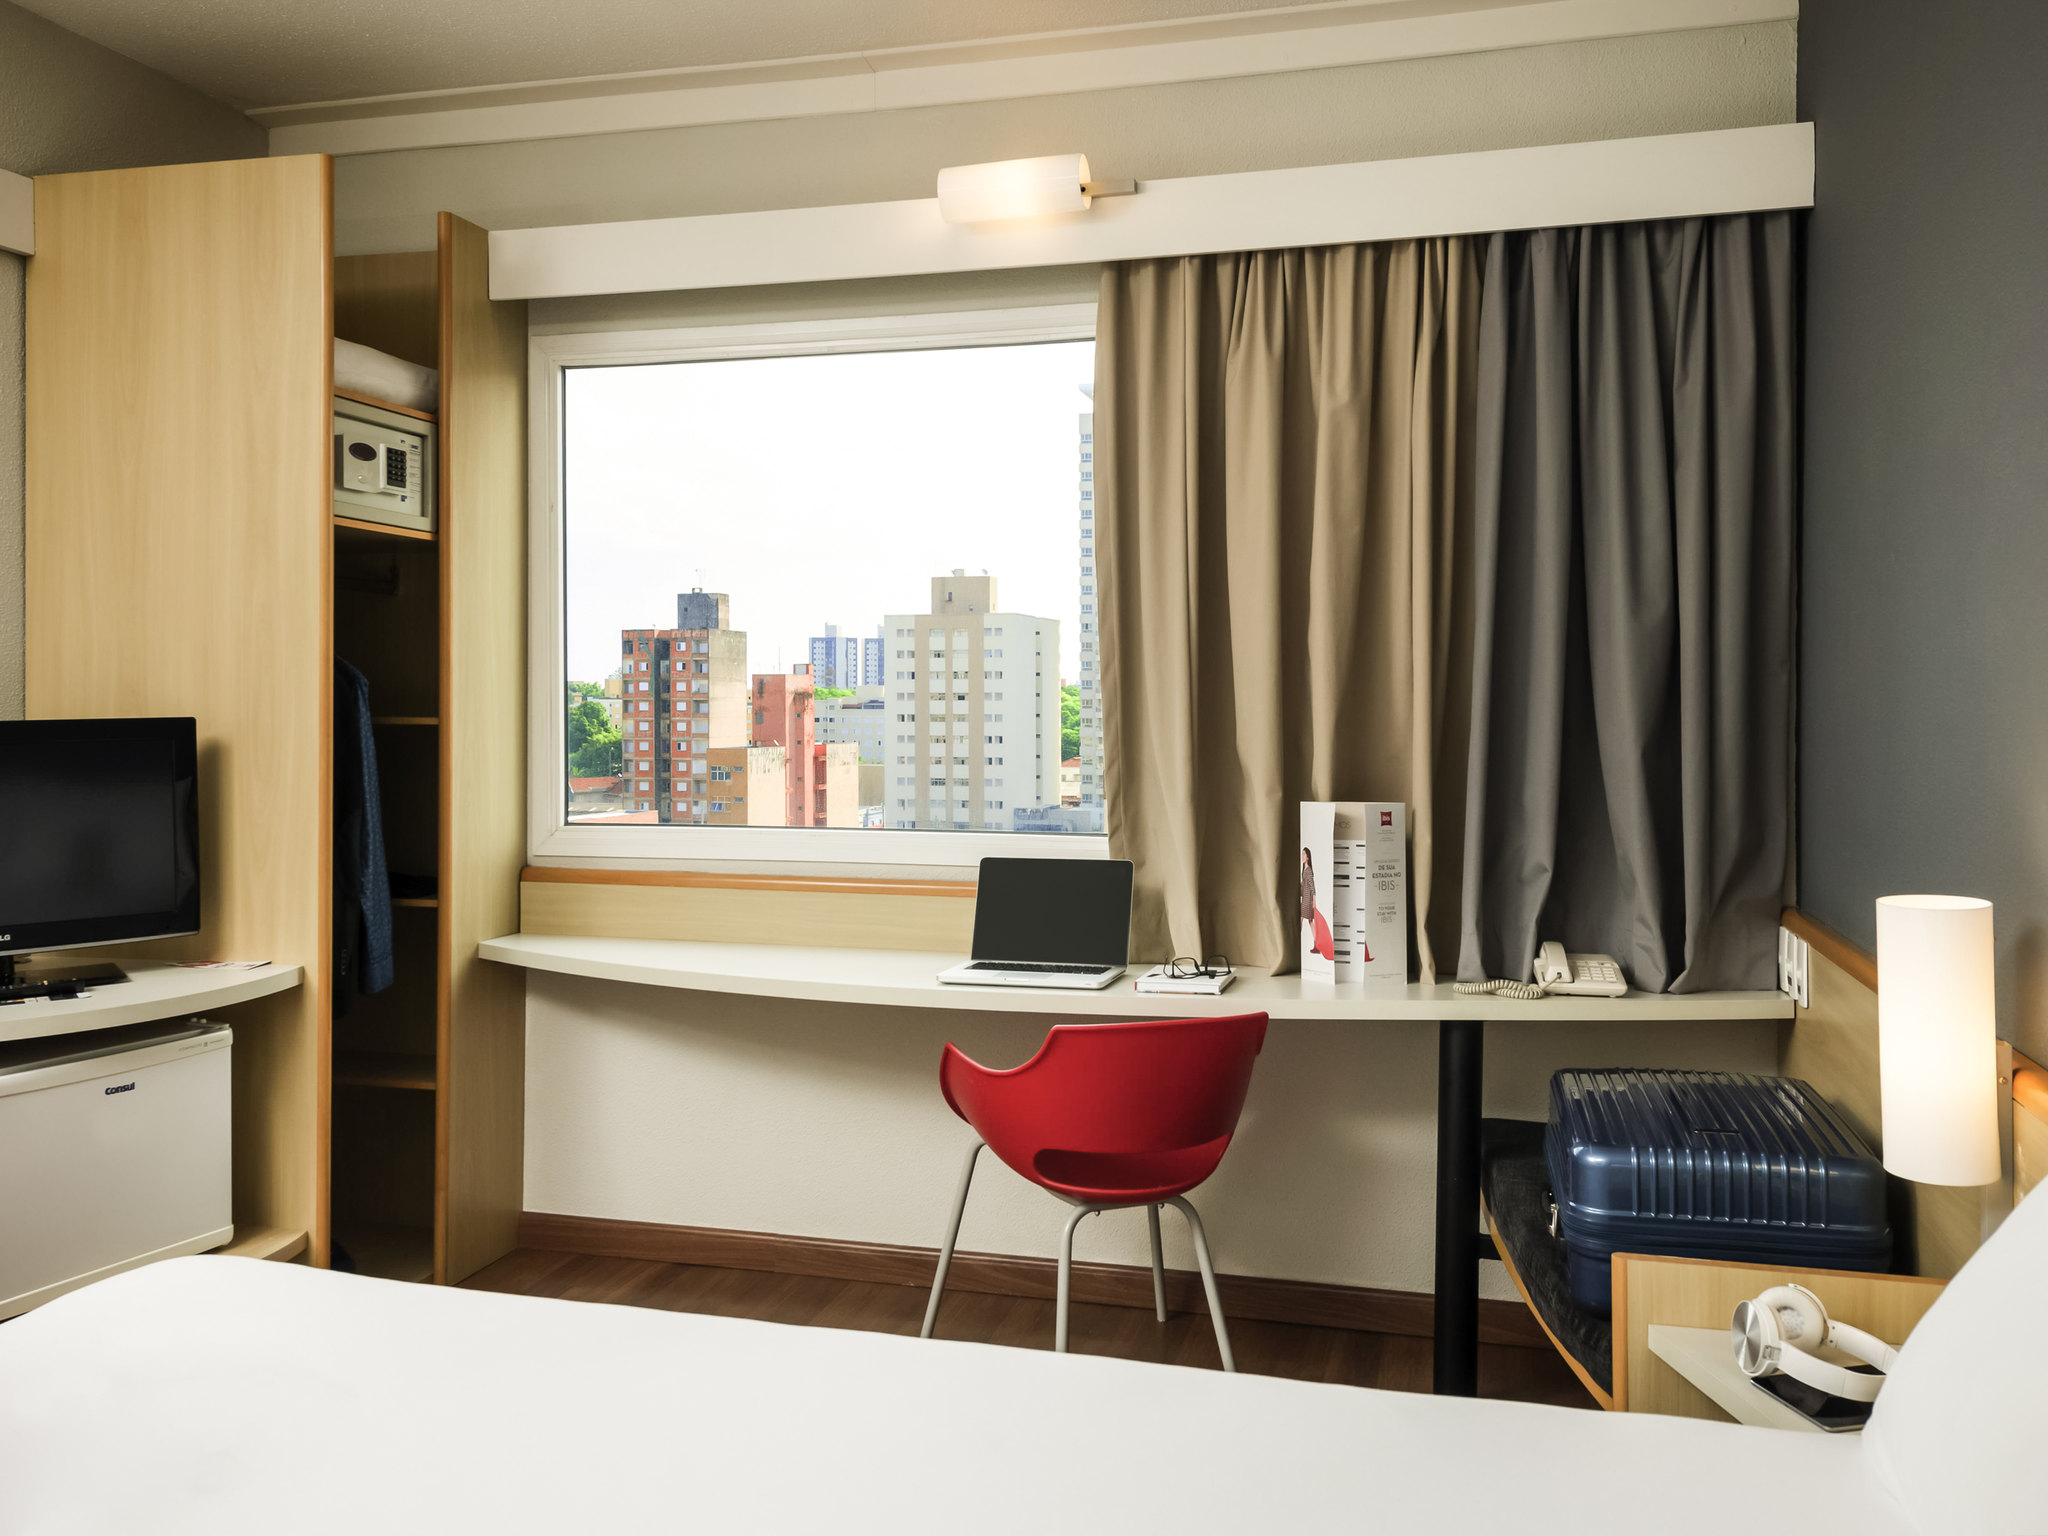 ibis Campinas-book your budget hotel on the official web site